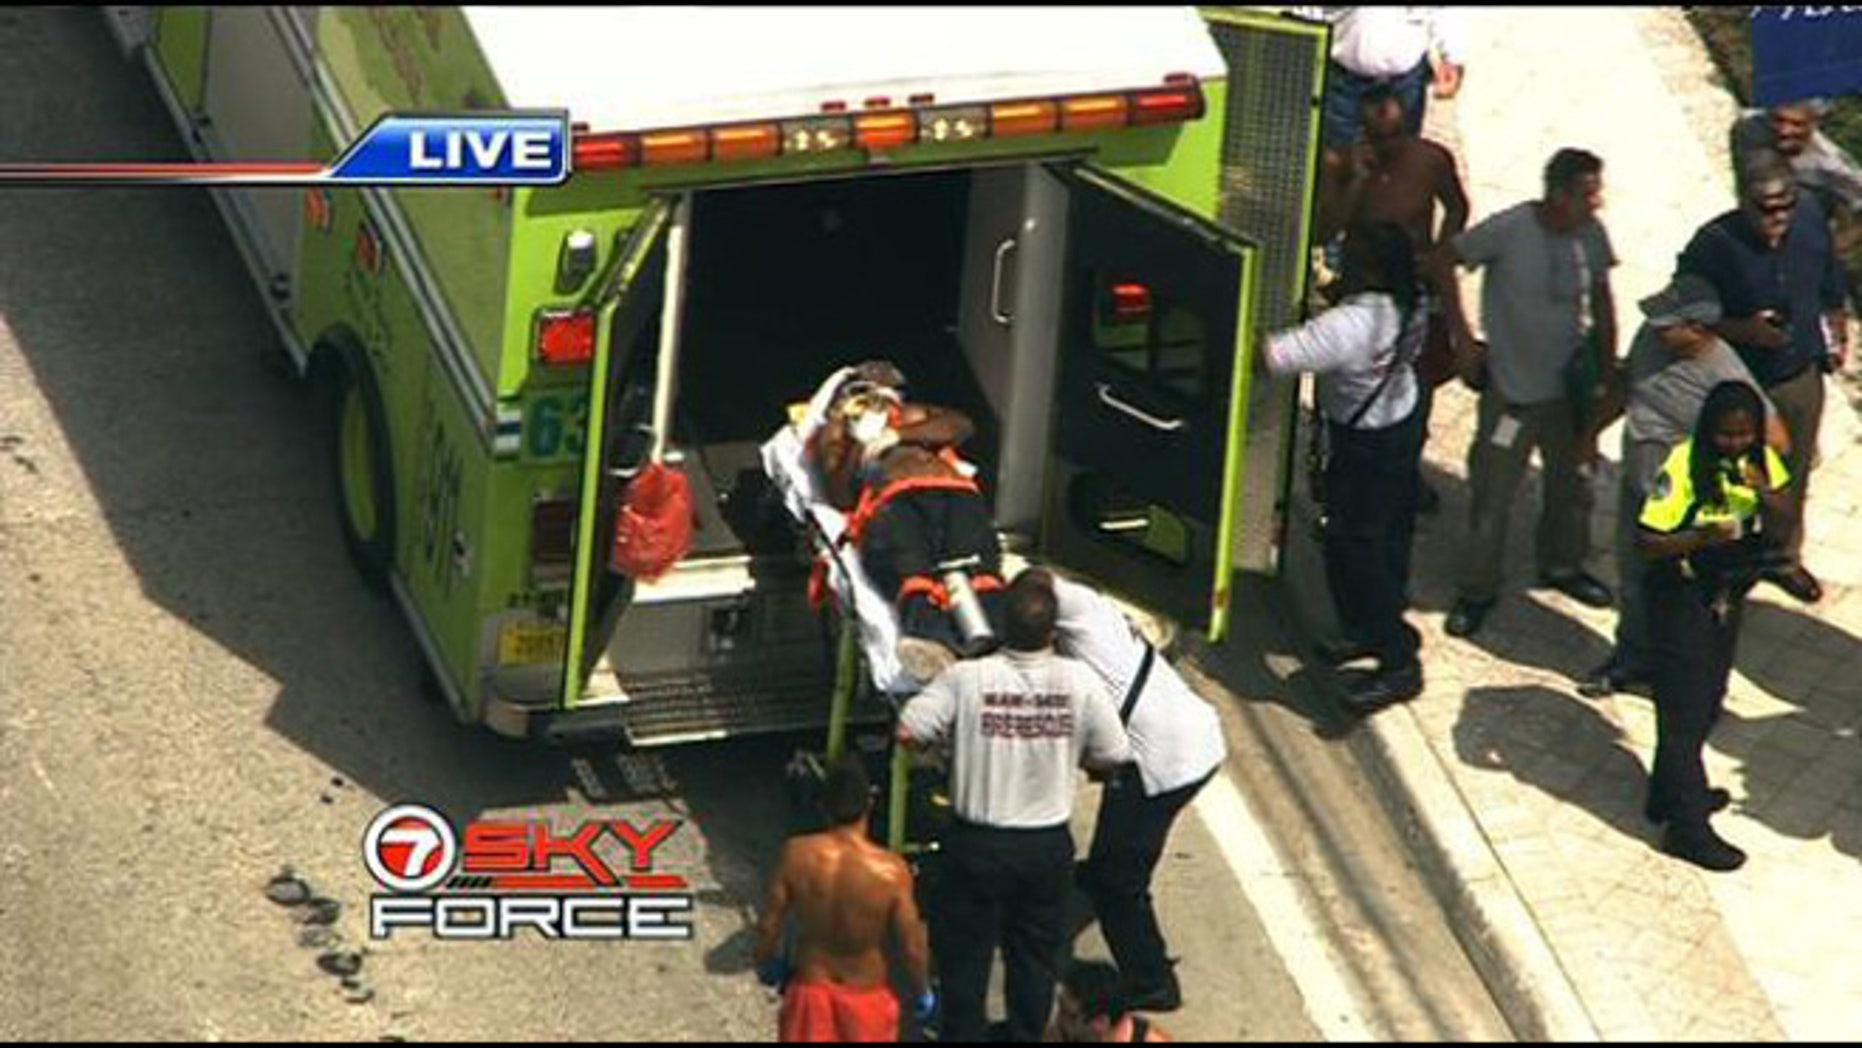 4 people were injured in possible explosion in Sunny Isles Beach, Florida.